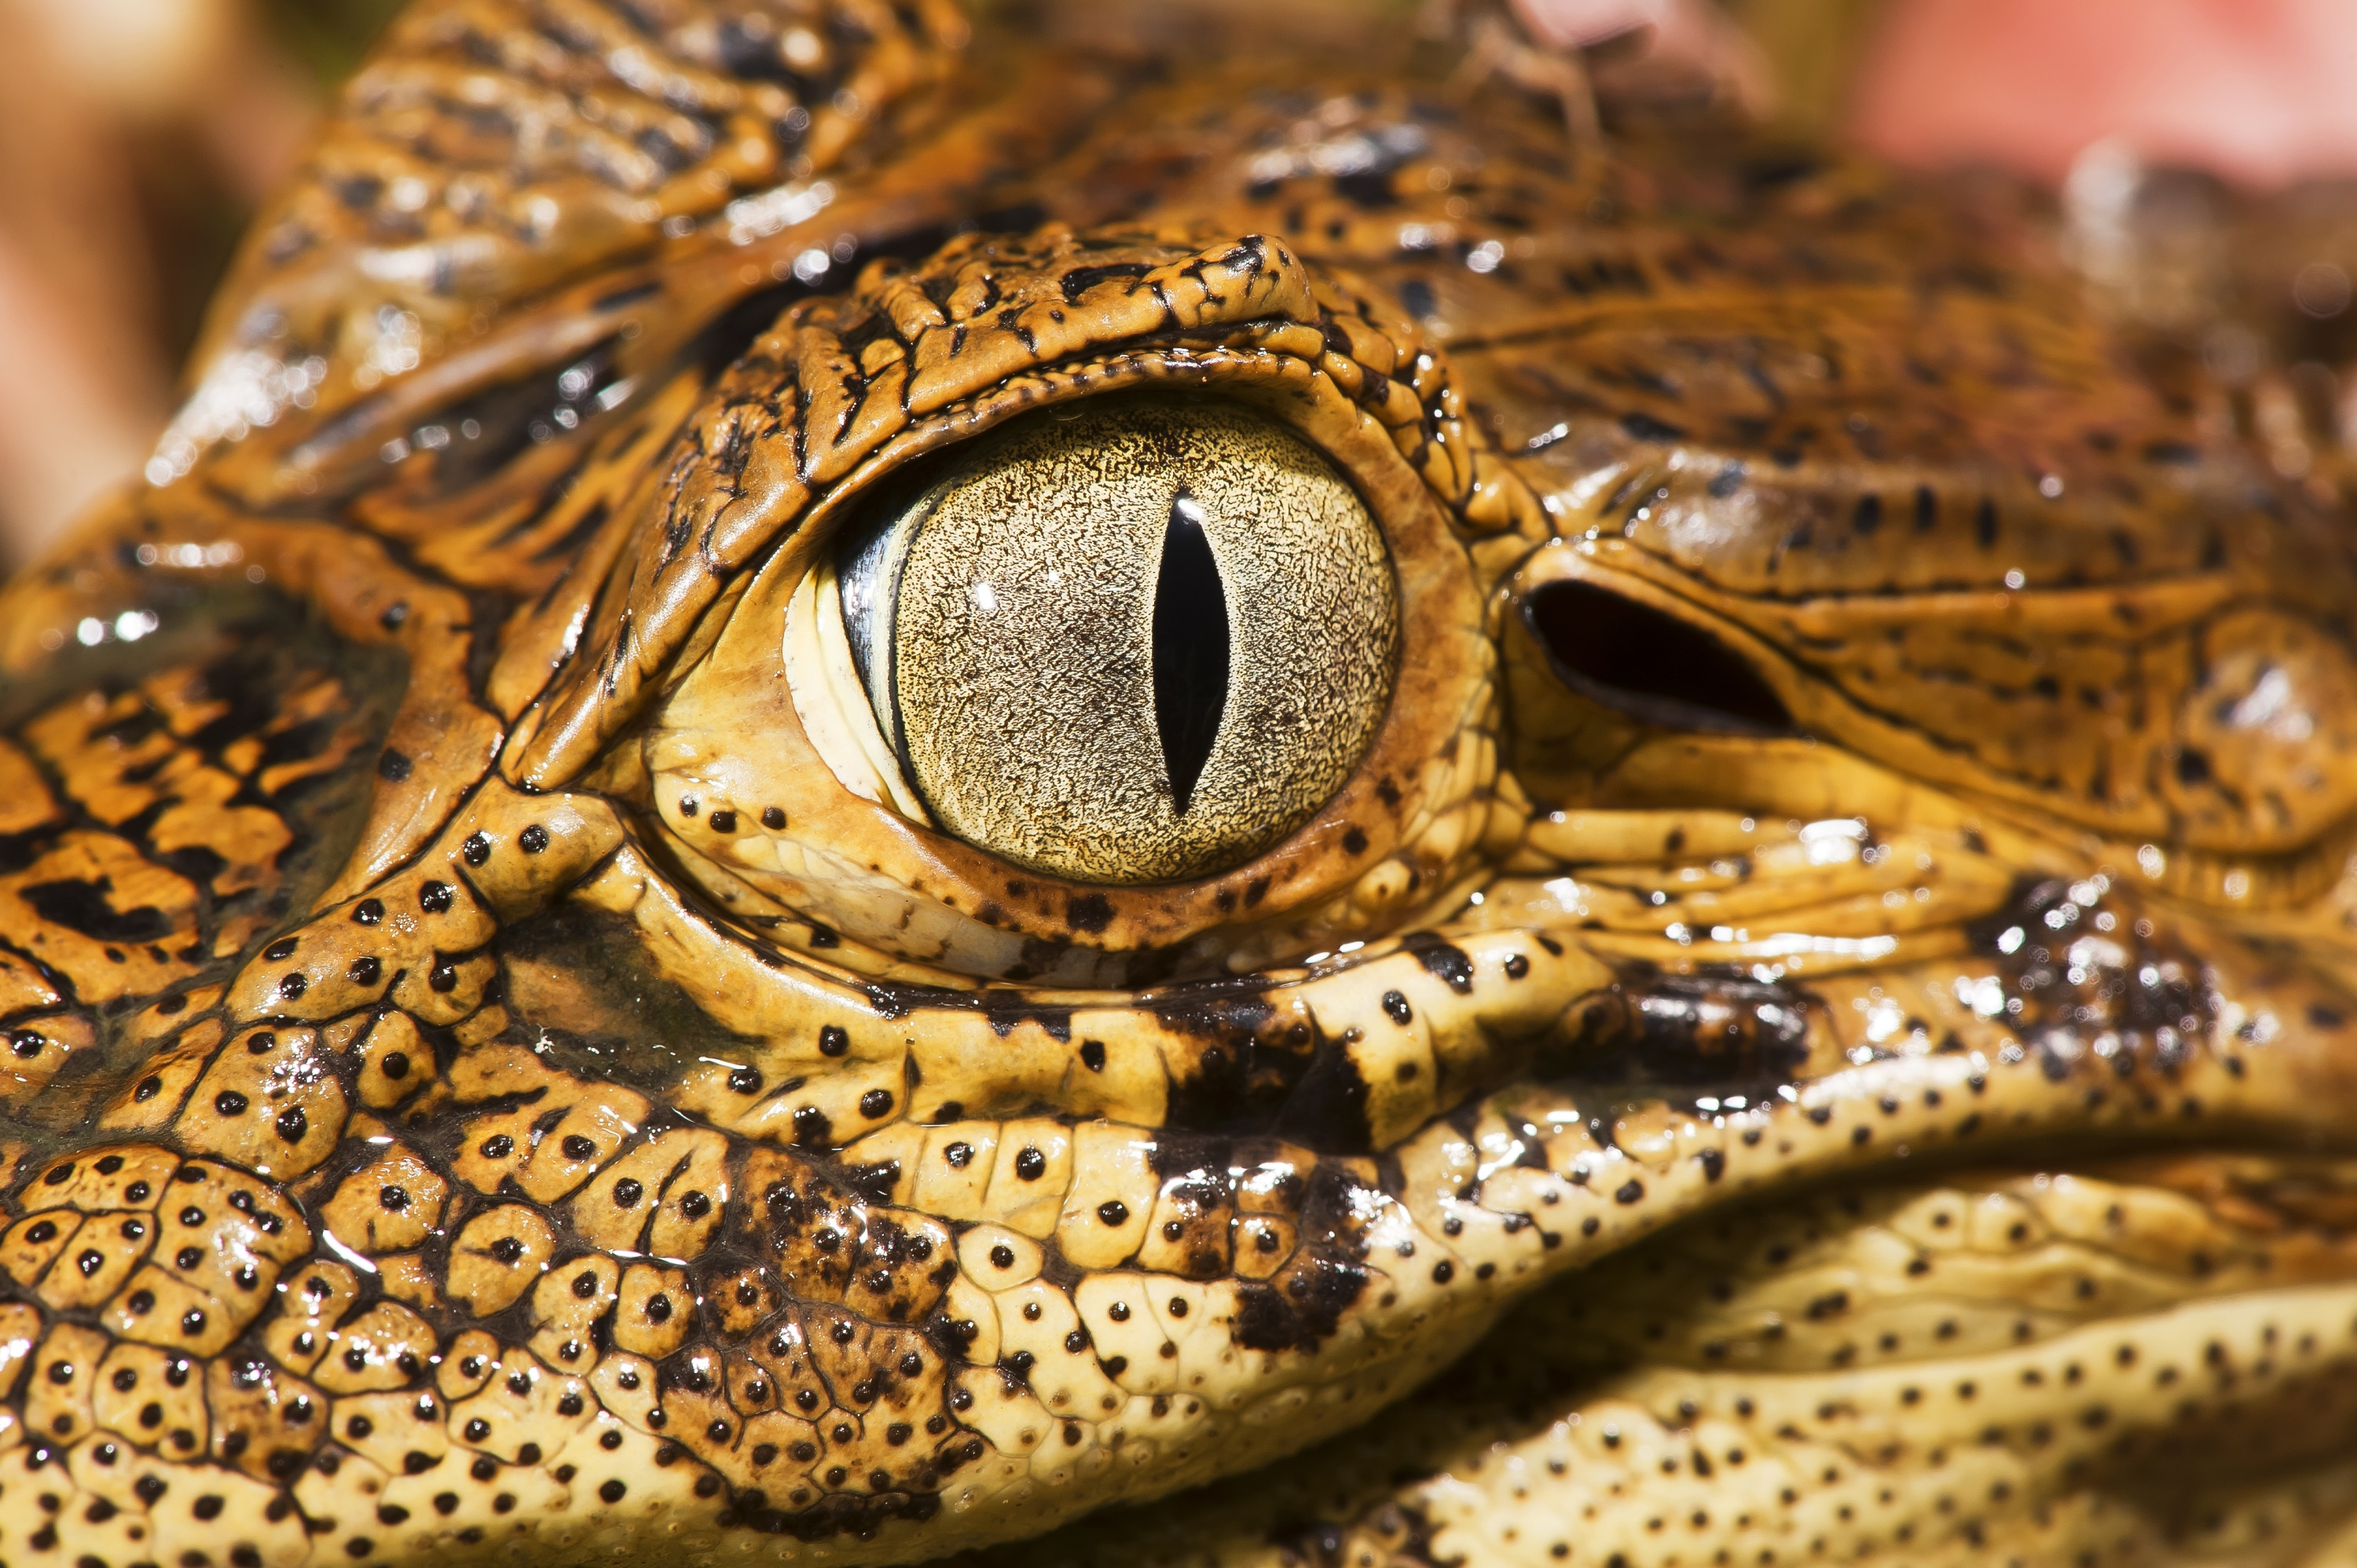 Eye of a baby broad-snouted caiman_State Park Itaunas_Leonardo Mercon.JPG